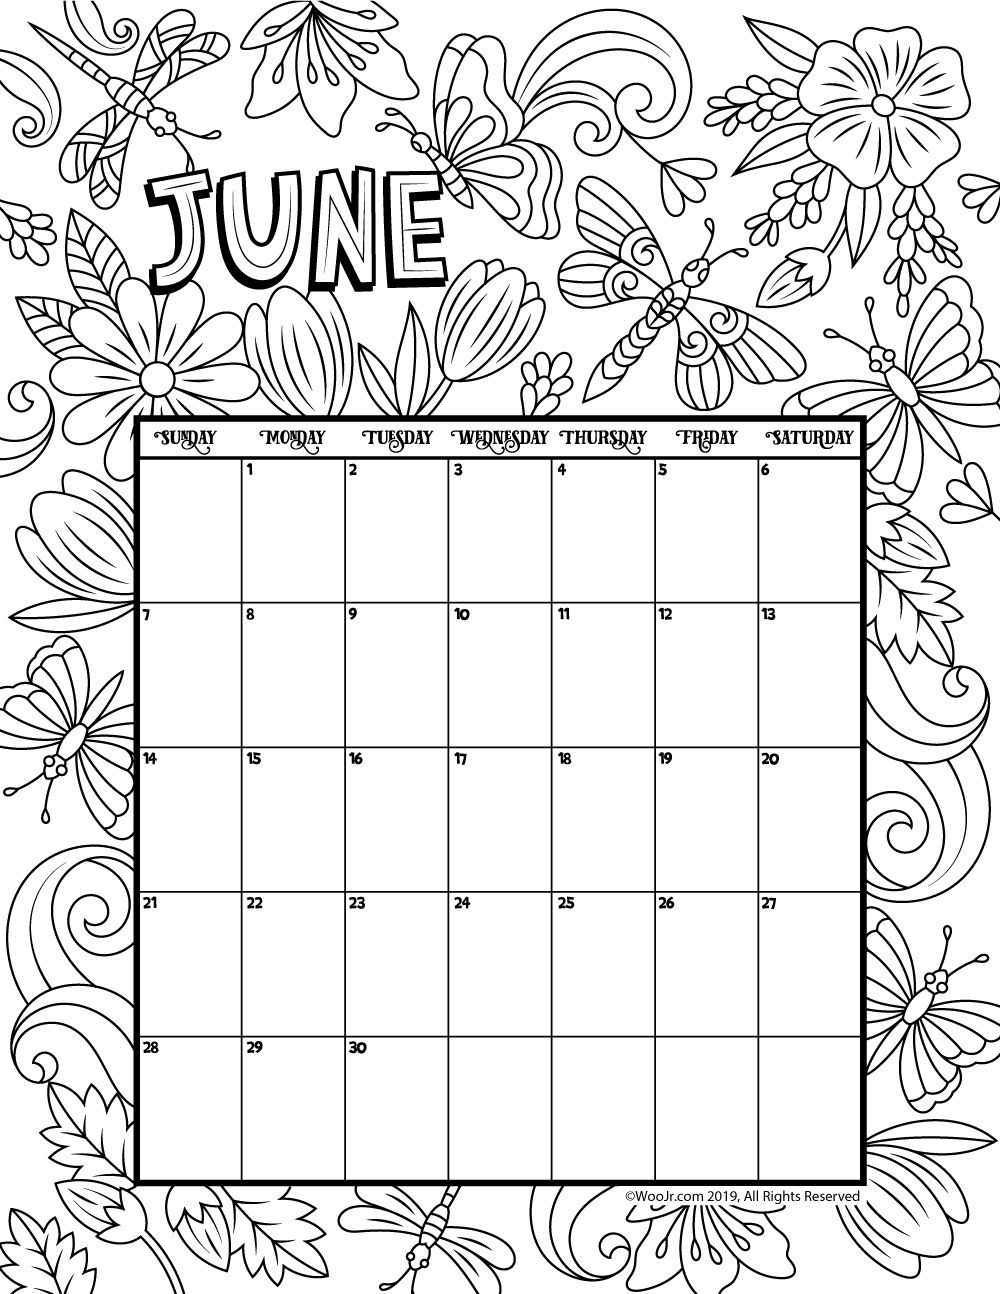 June 2020 Coloring Calendar in 2020 (With images